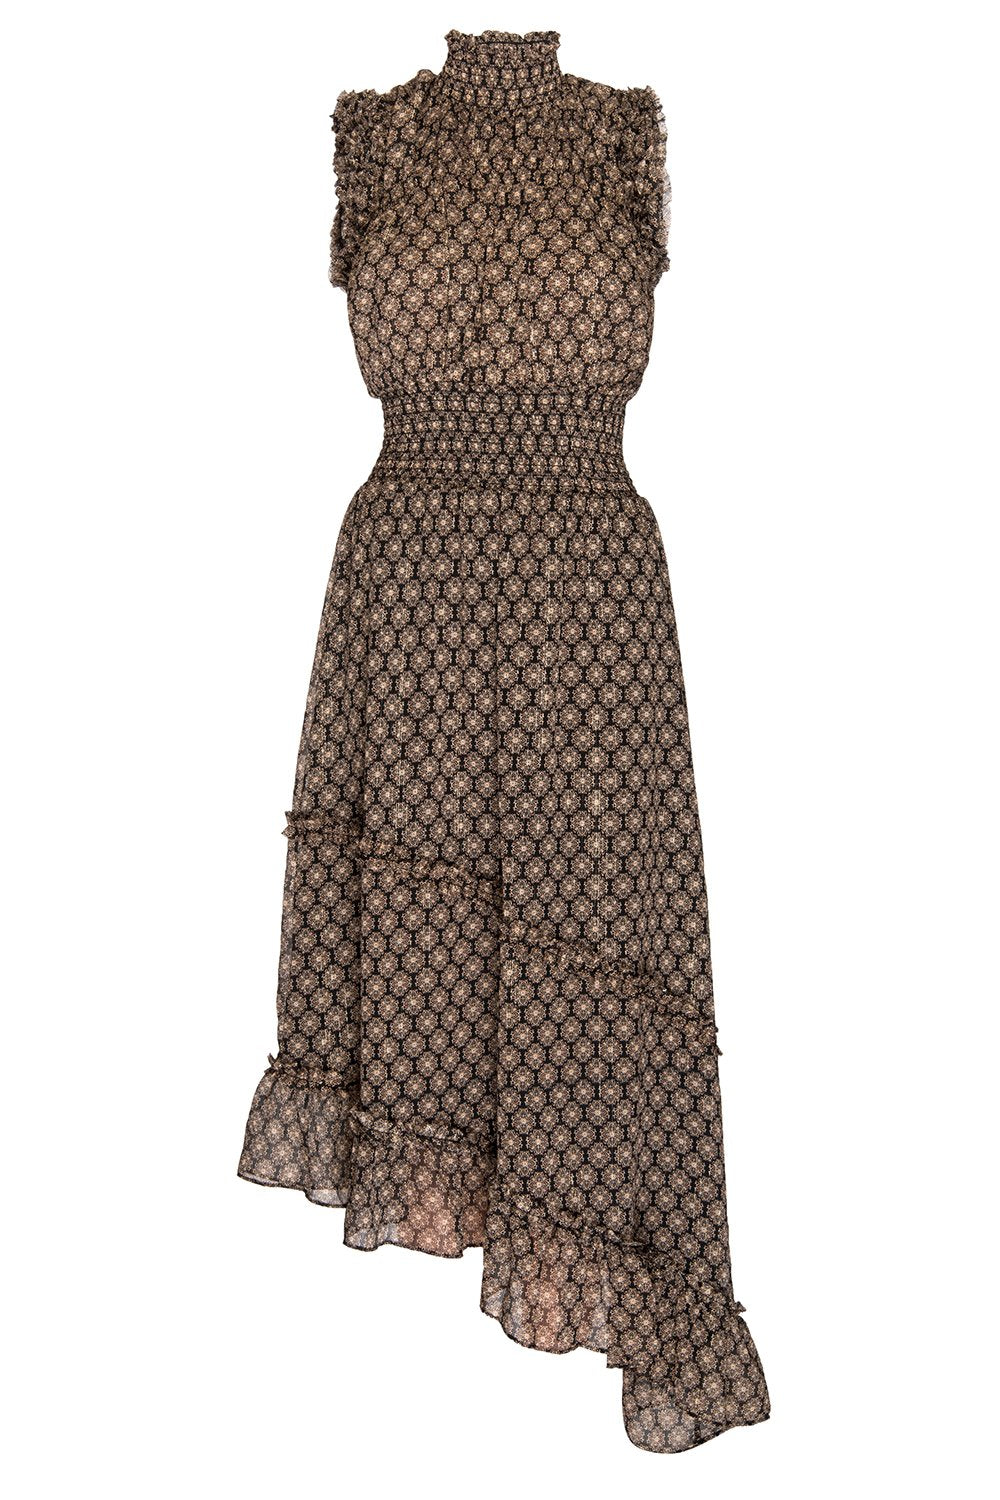 Misa - Shalom Dress - Medallion Print